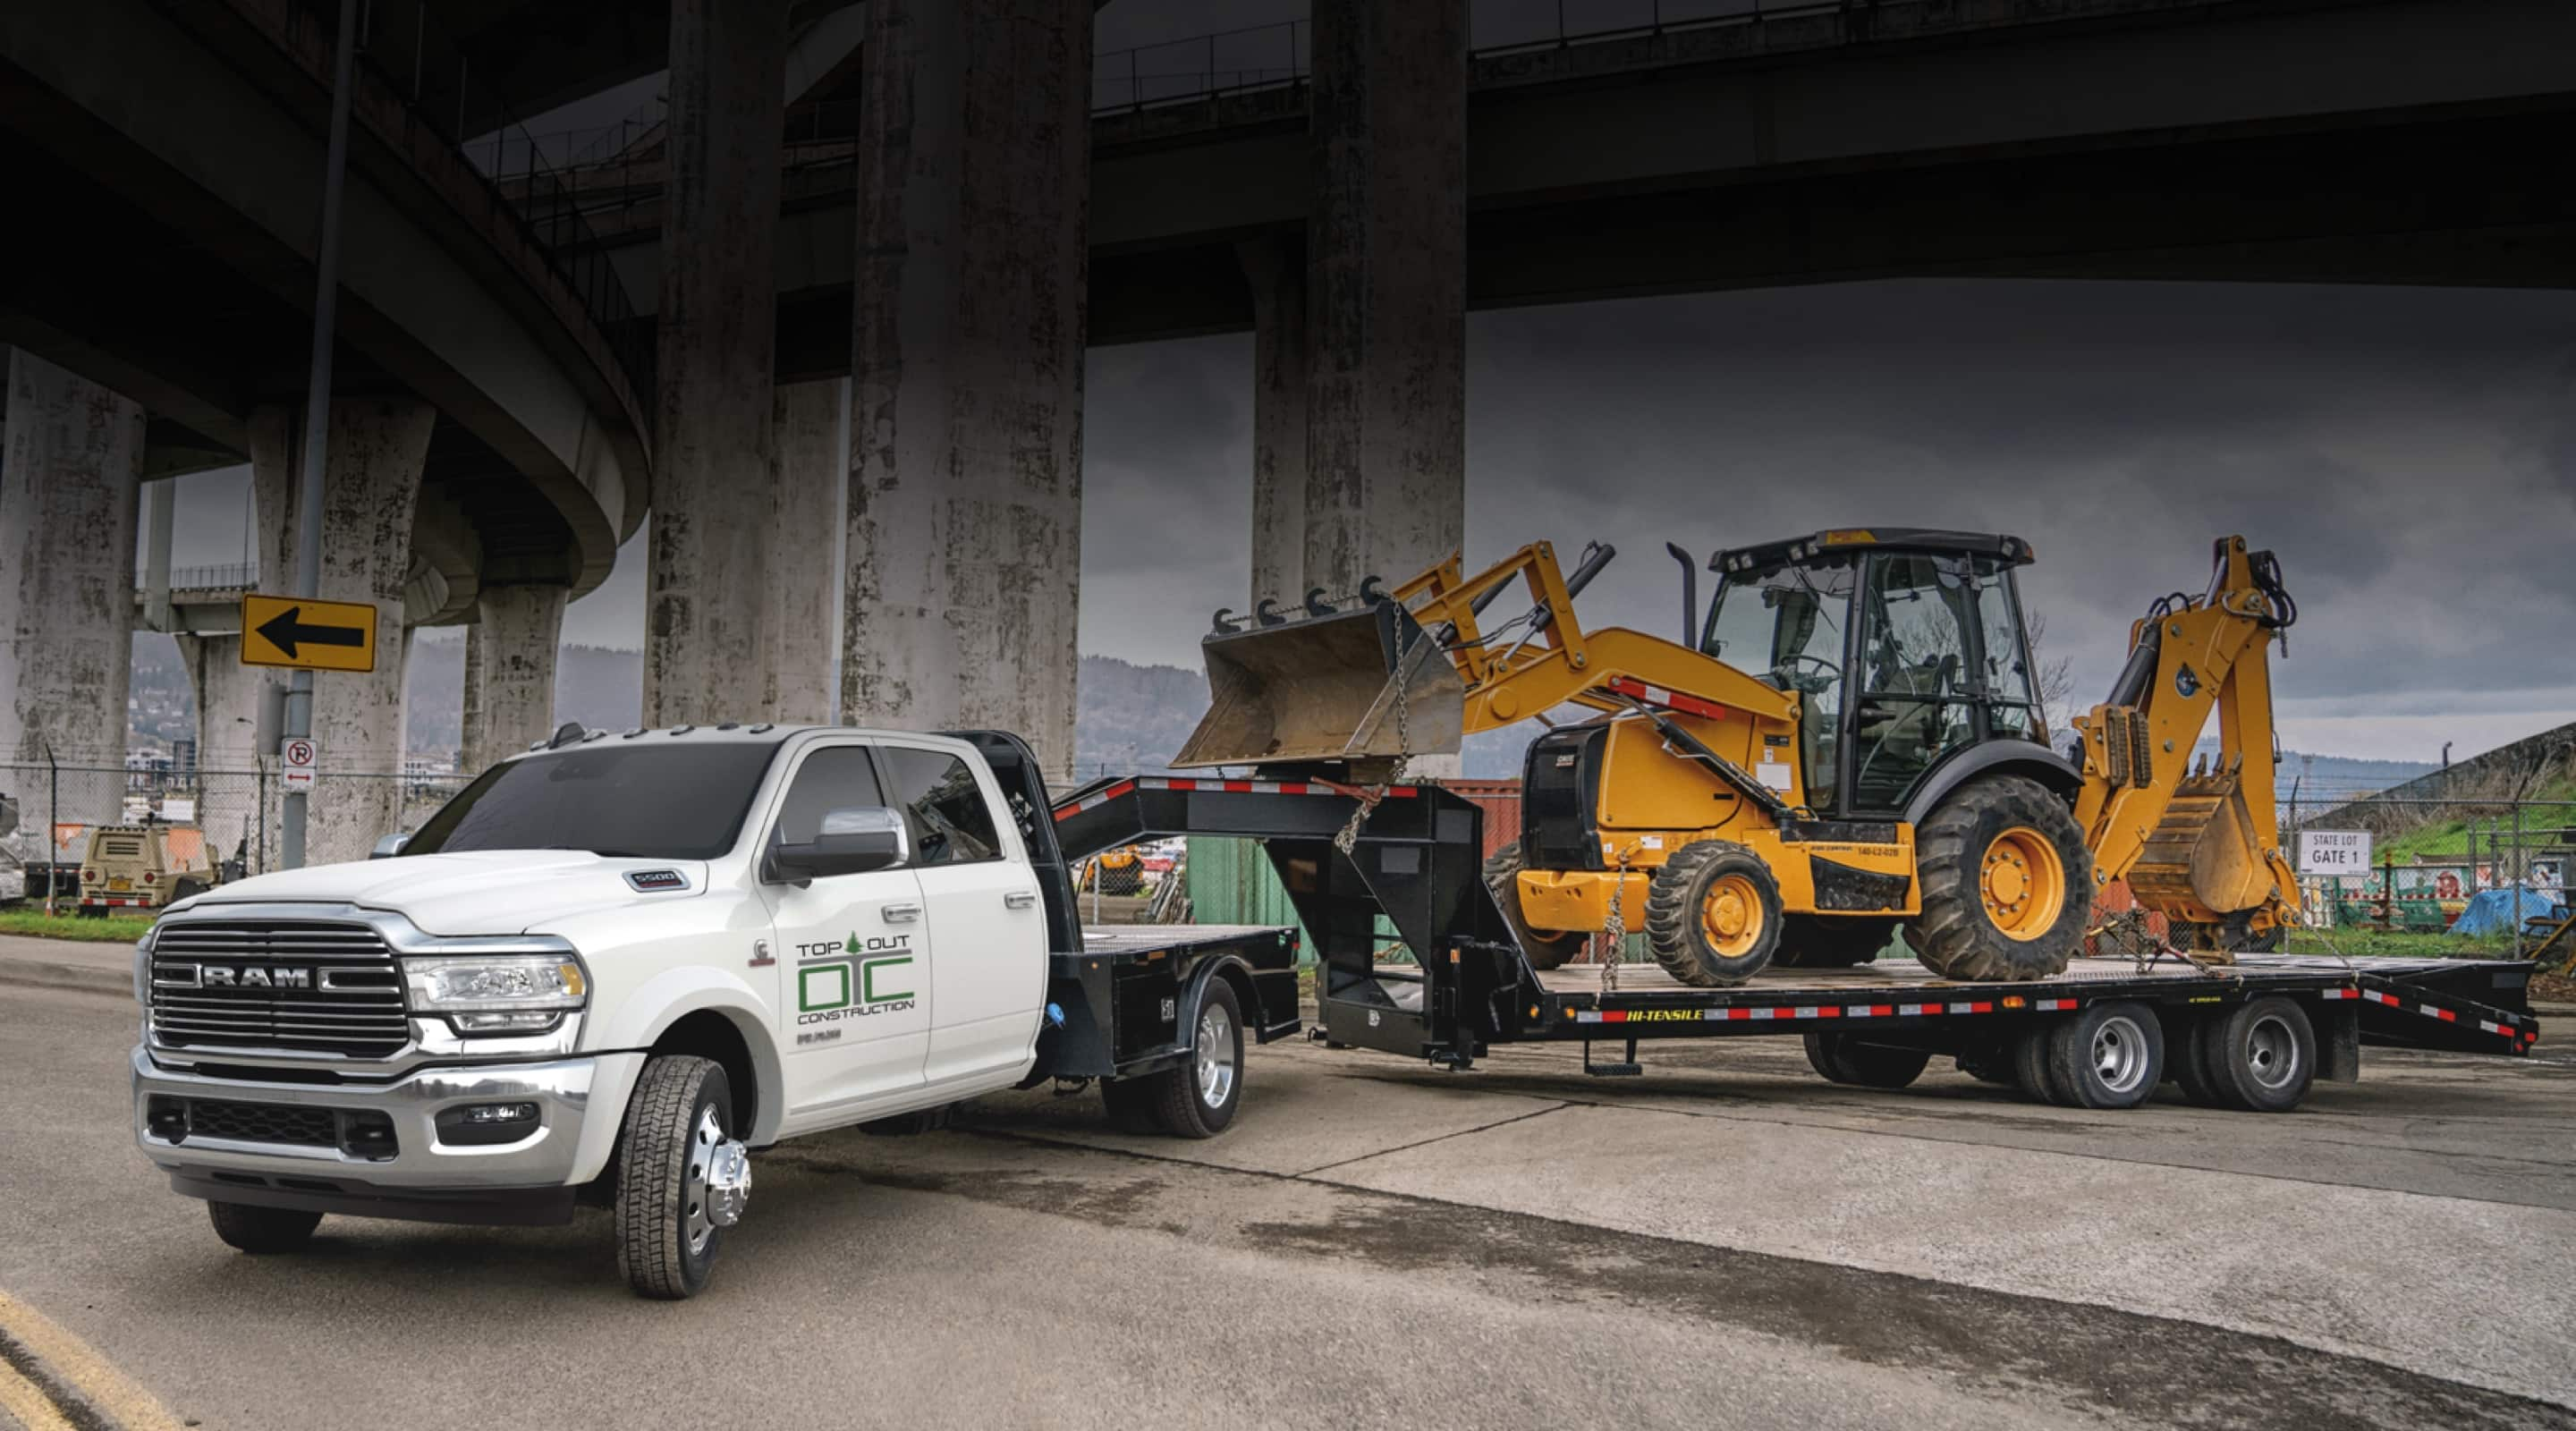 2020 Ram Trucks Chassis Cab Towing Capability Features